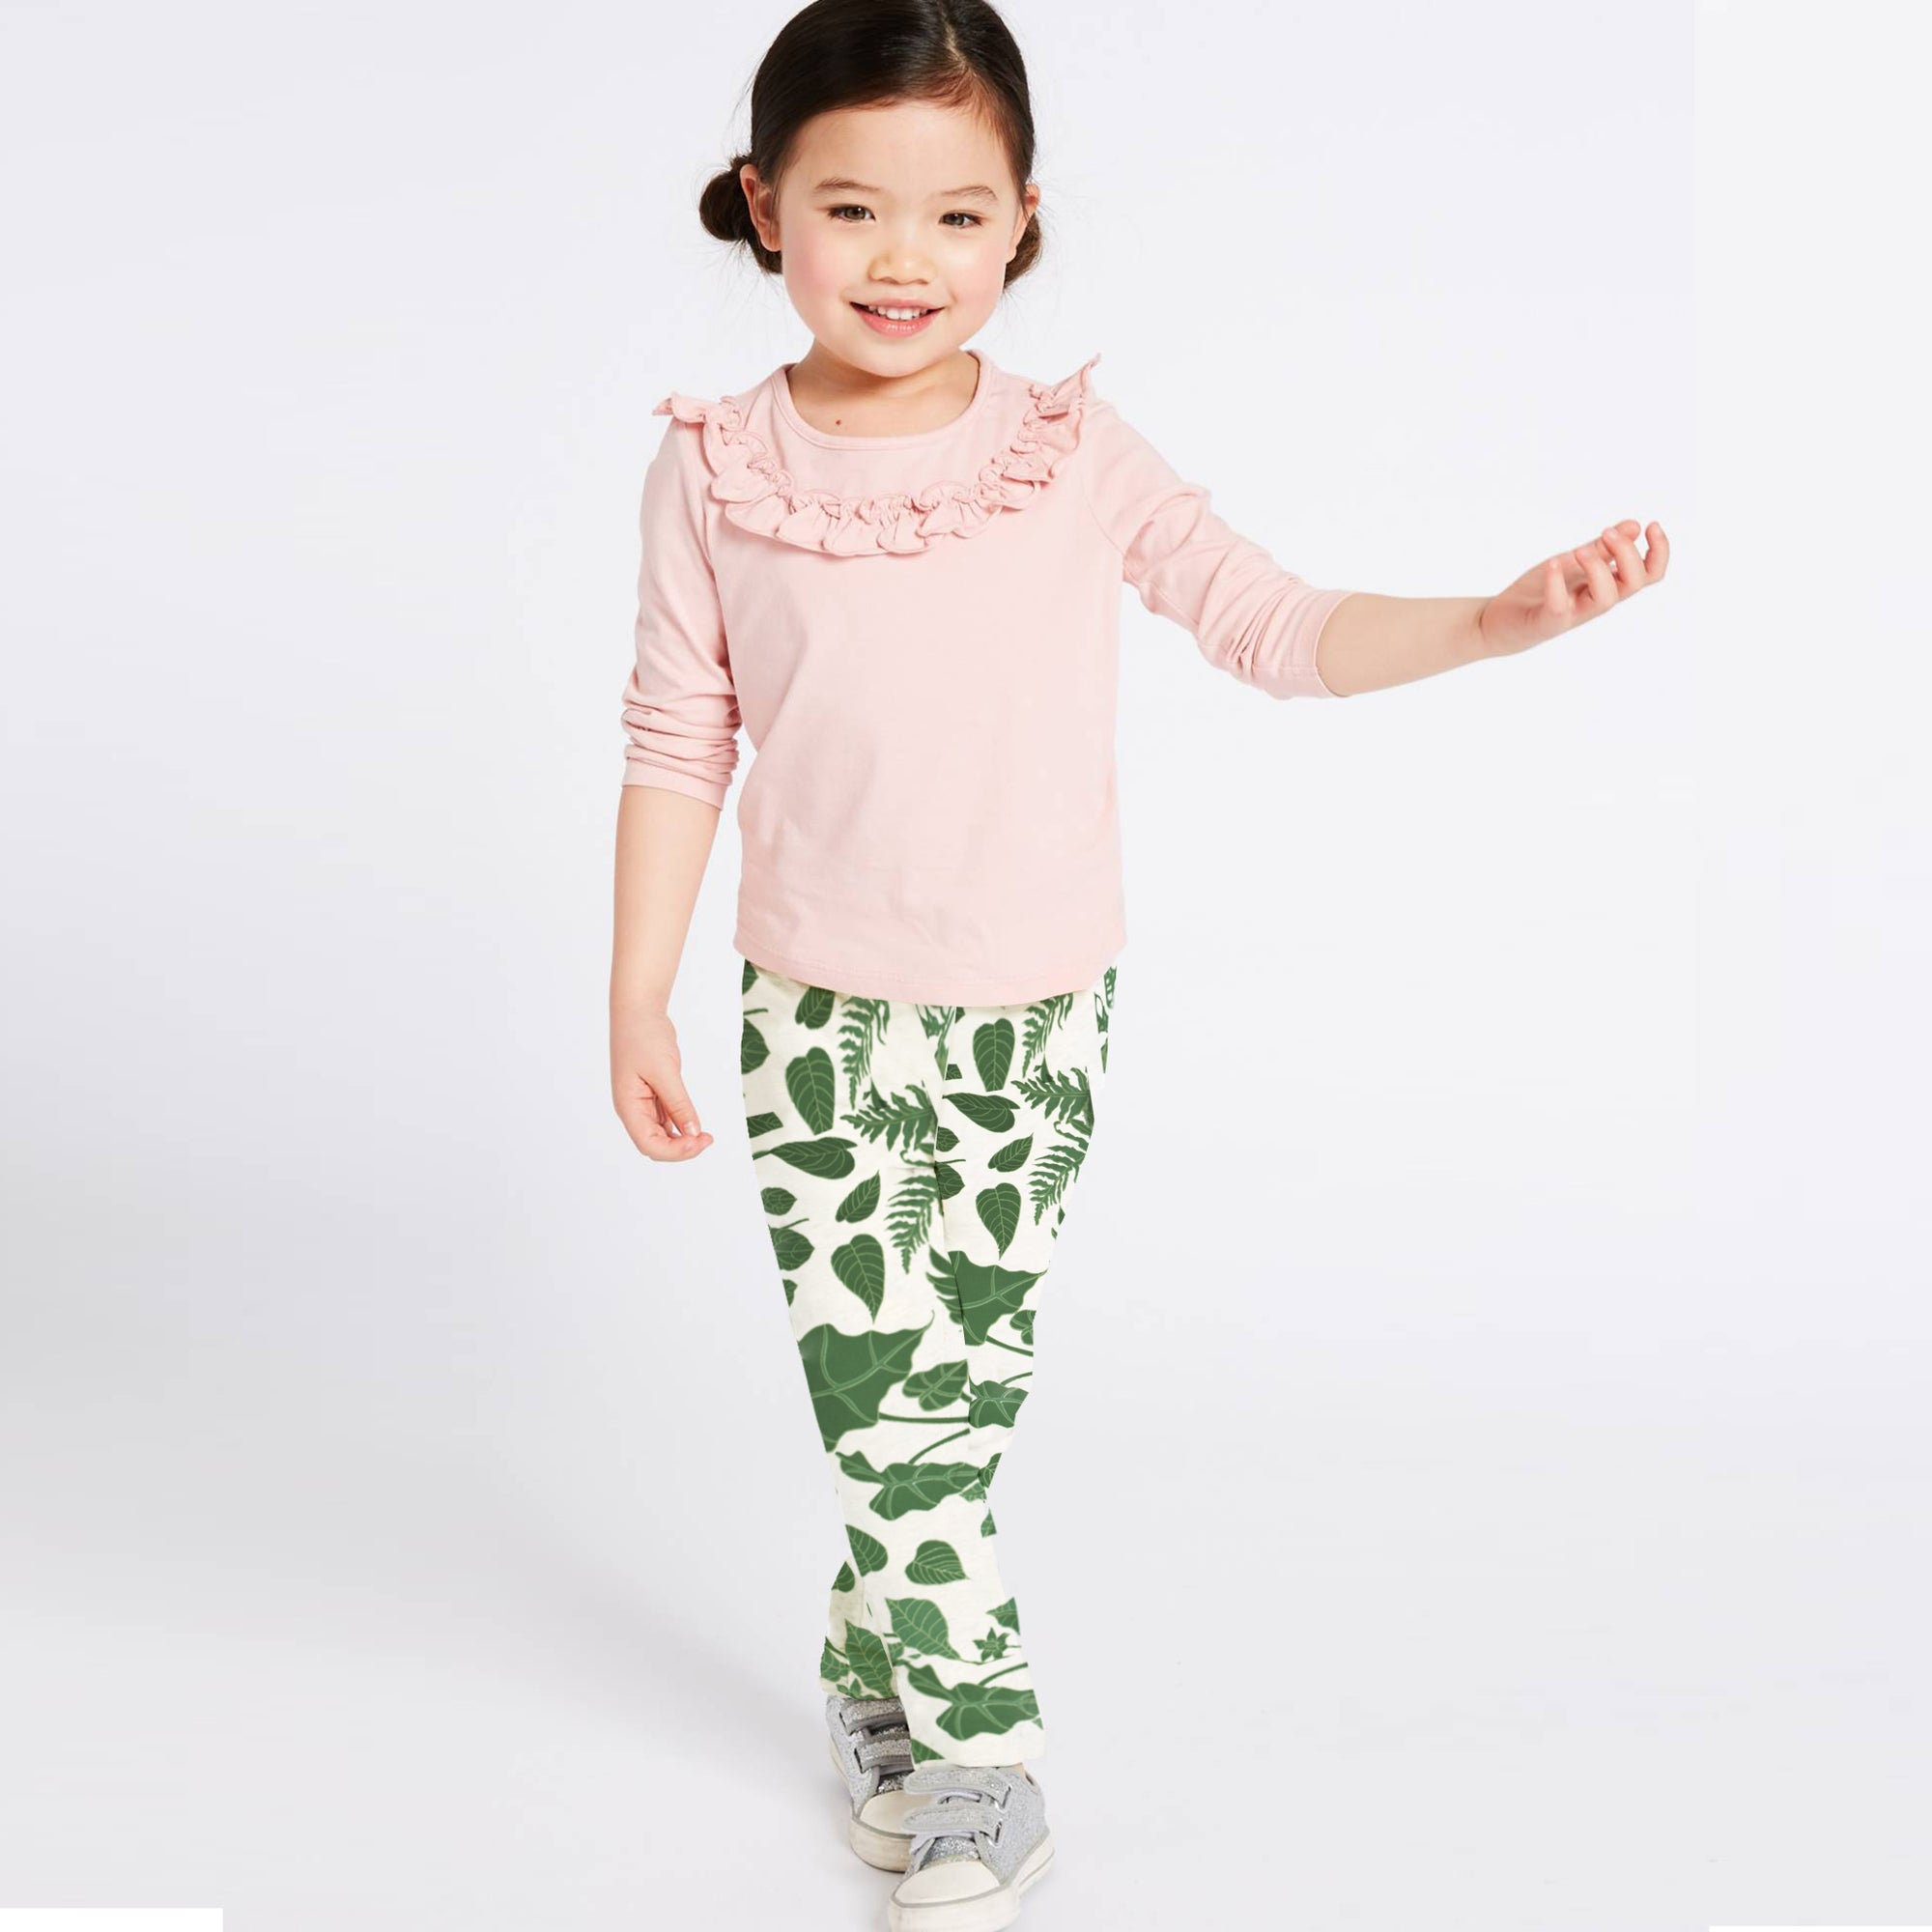 Next Straight Fit Cotton Trouser For Kids-SK0351